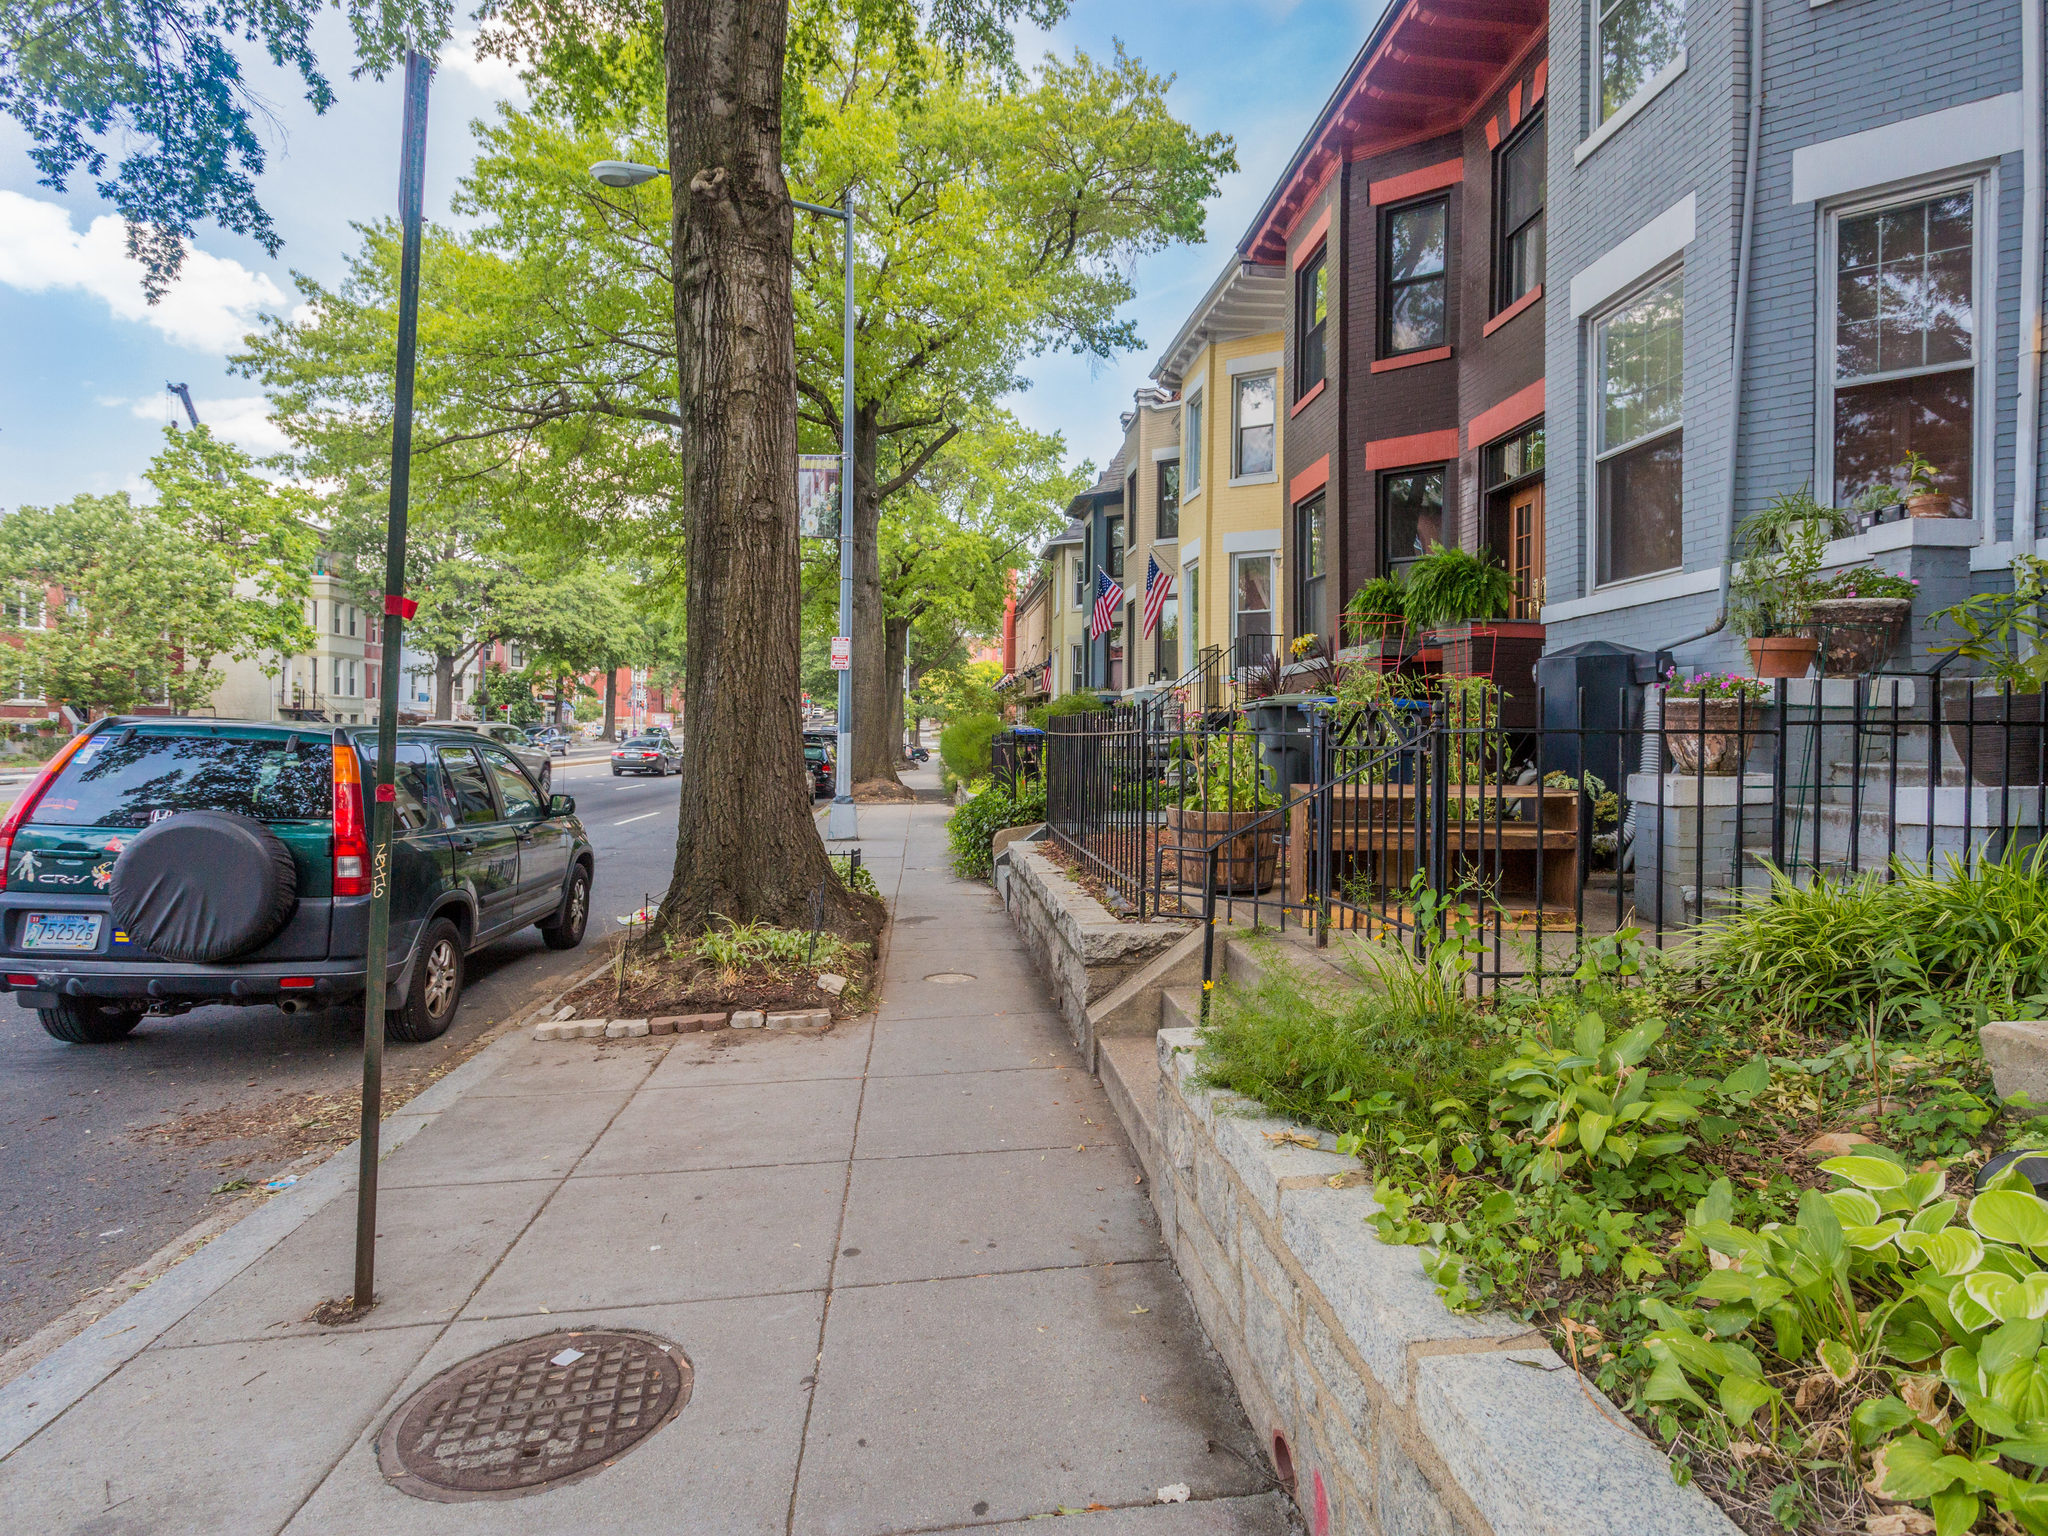 132 Rhode Island Ave NW-MLS_Size-049-50-Neighborhood-2048x1536-72dpi.jpg